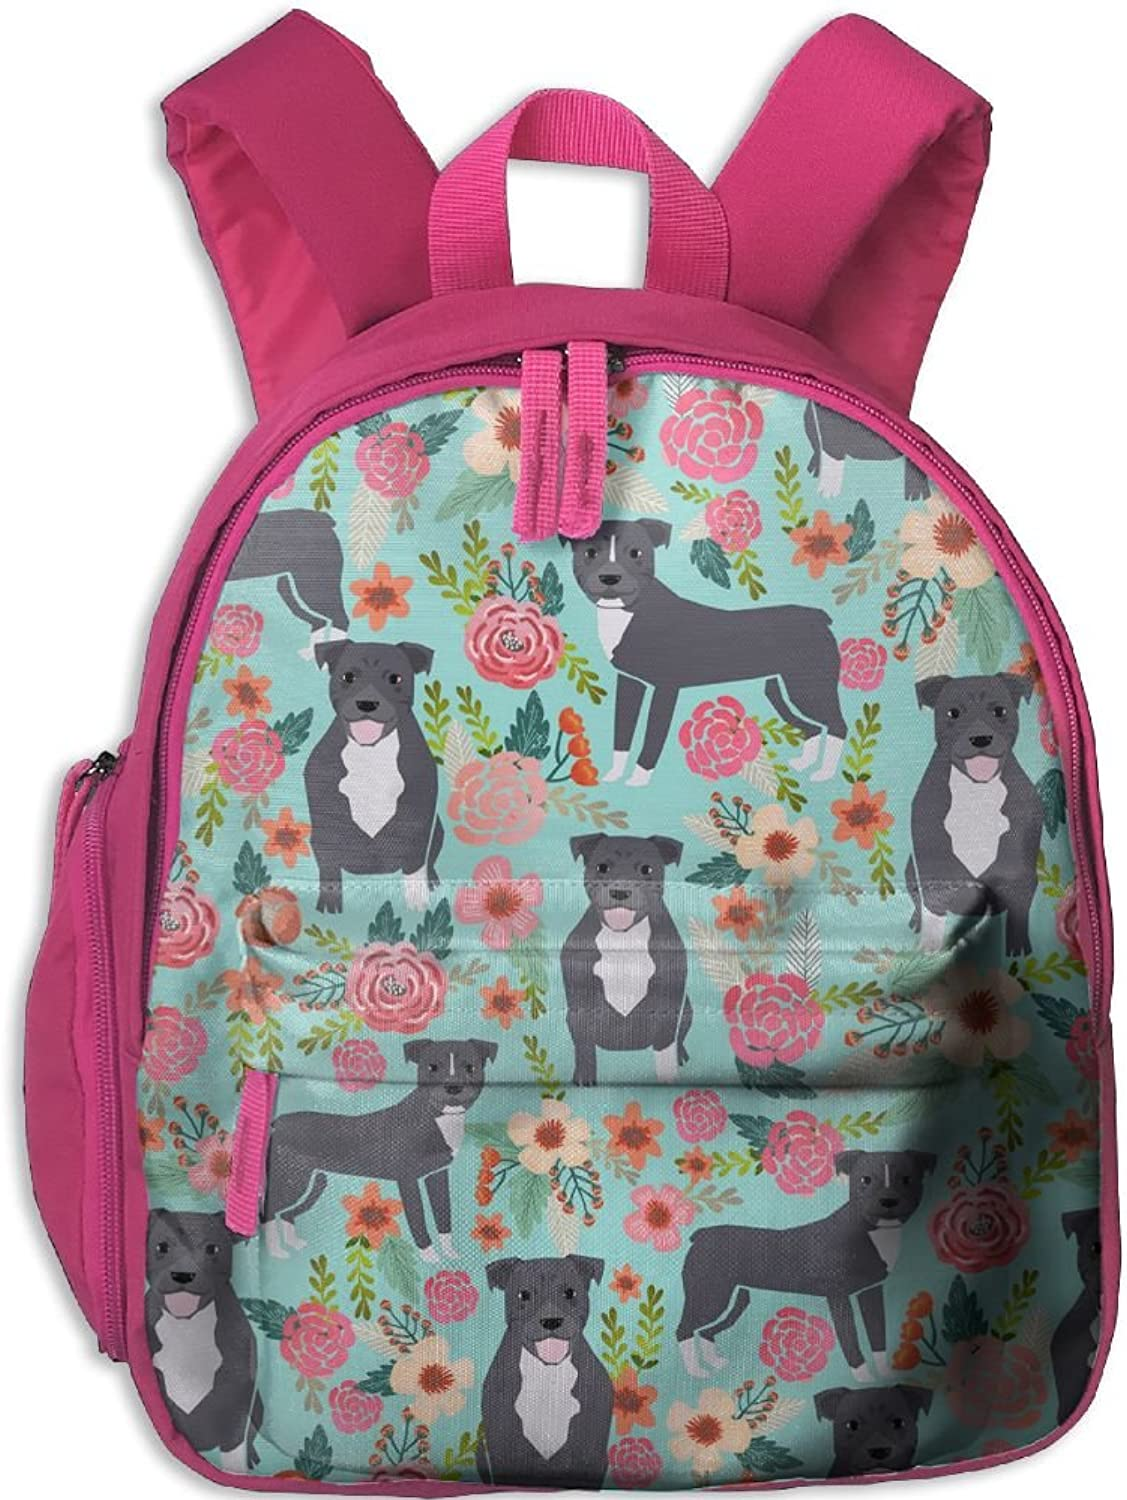 School Bag Pitbull(55) With Durable Travel Camping Backpack Backpack